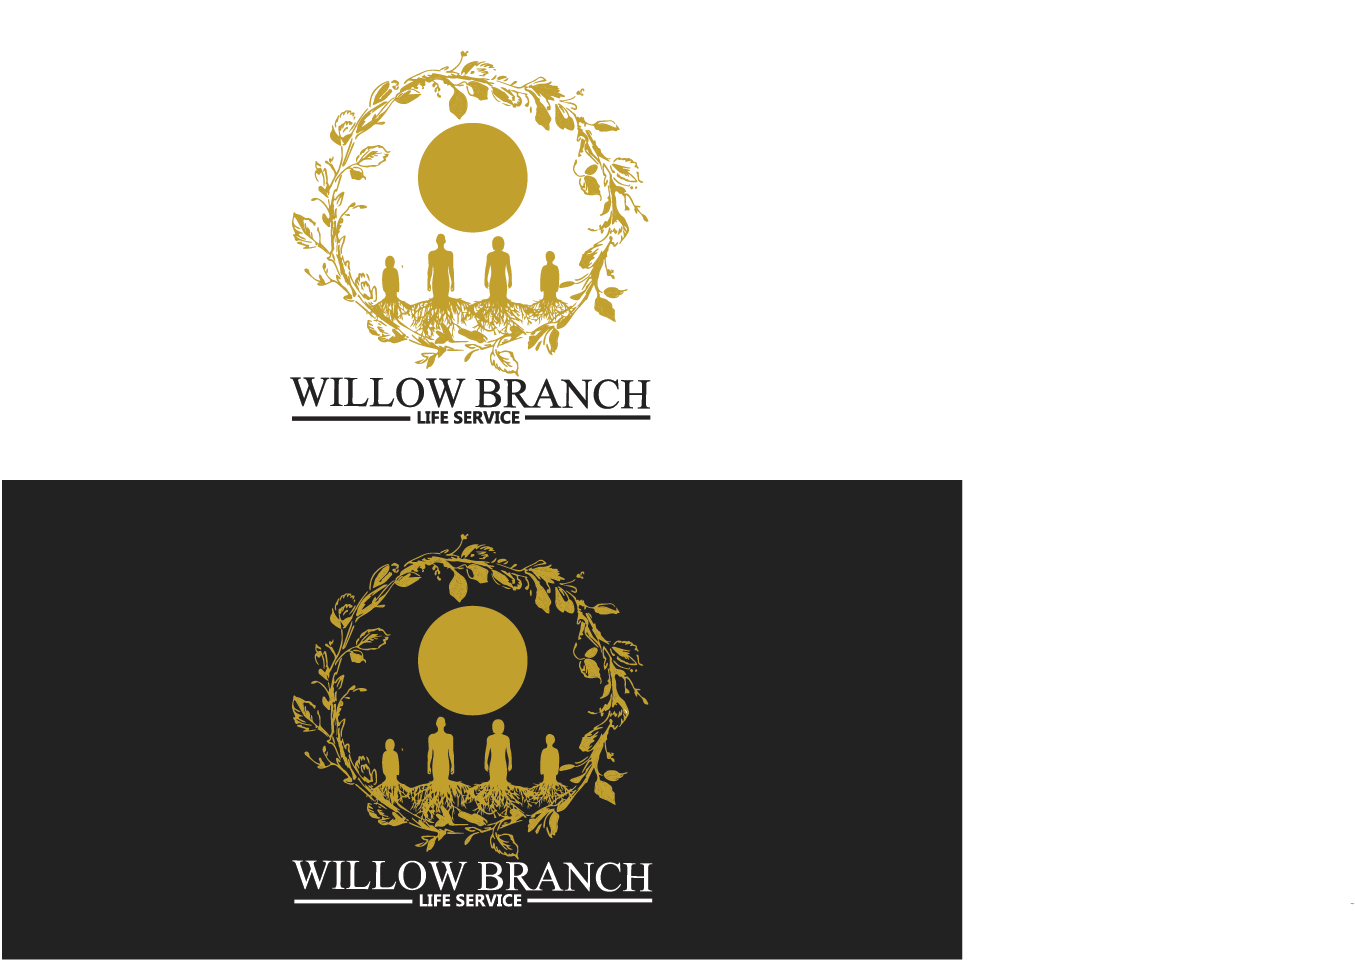 Logo Design by pojas12 - Entry No. 146 in the Logo Design Contest Artistic Logo Design for Willow Branch Life Service.